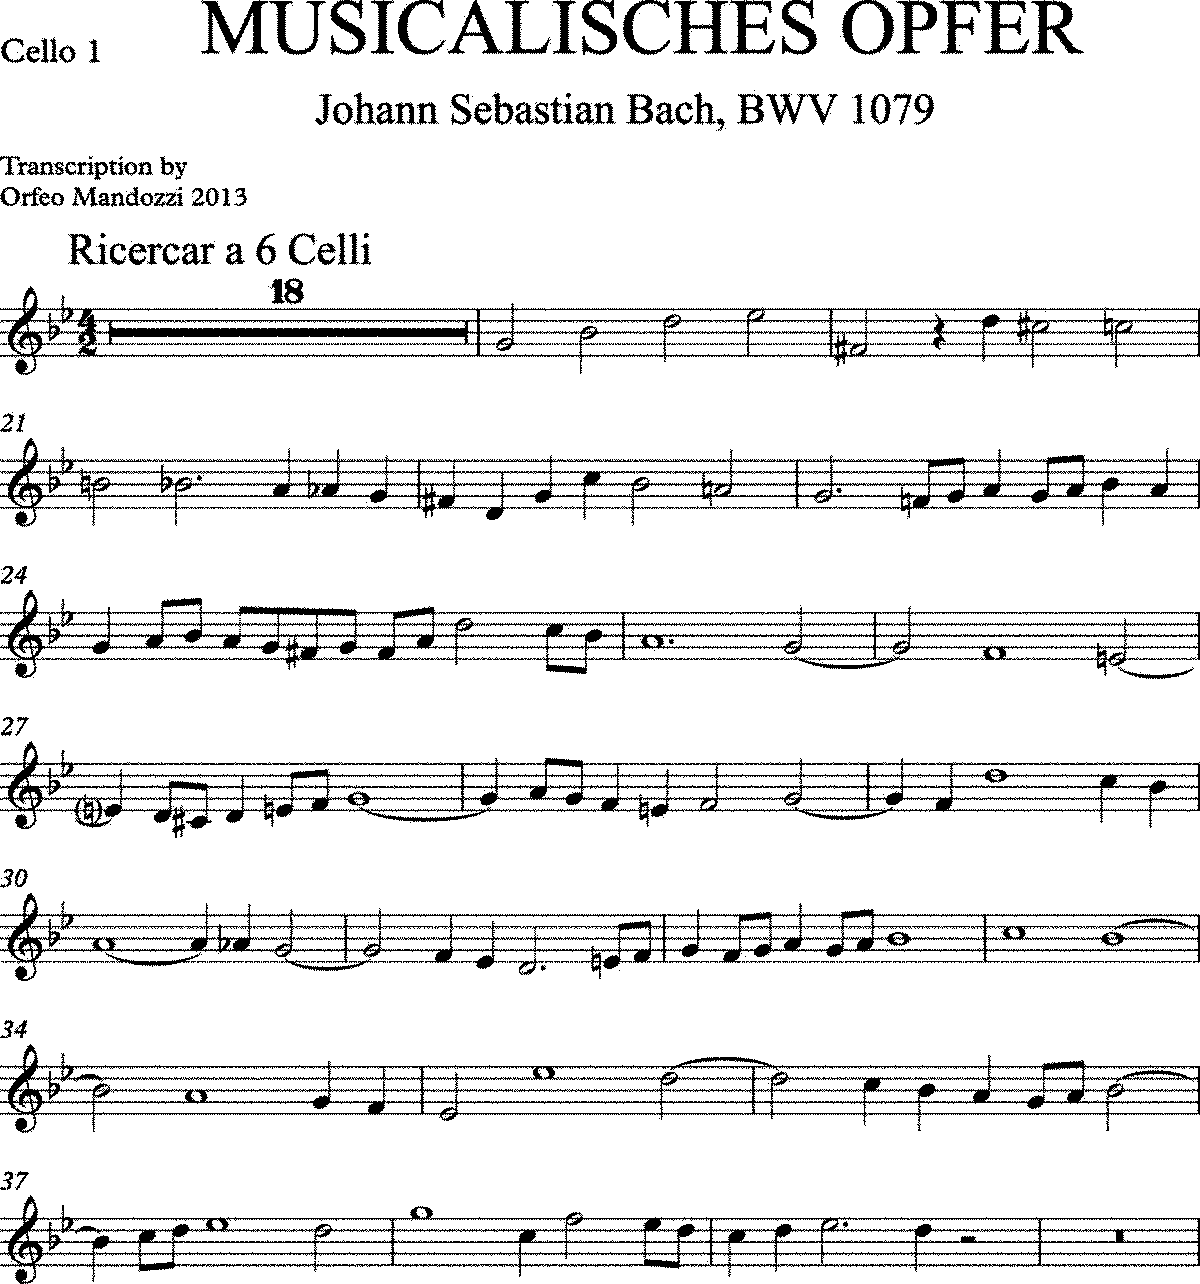 PMLP04550-Bach Mus Opfer Ricercar gmoll Score and Parts.pdf